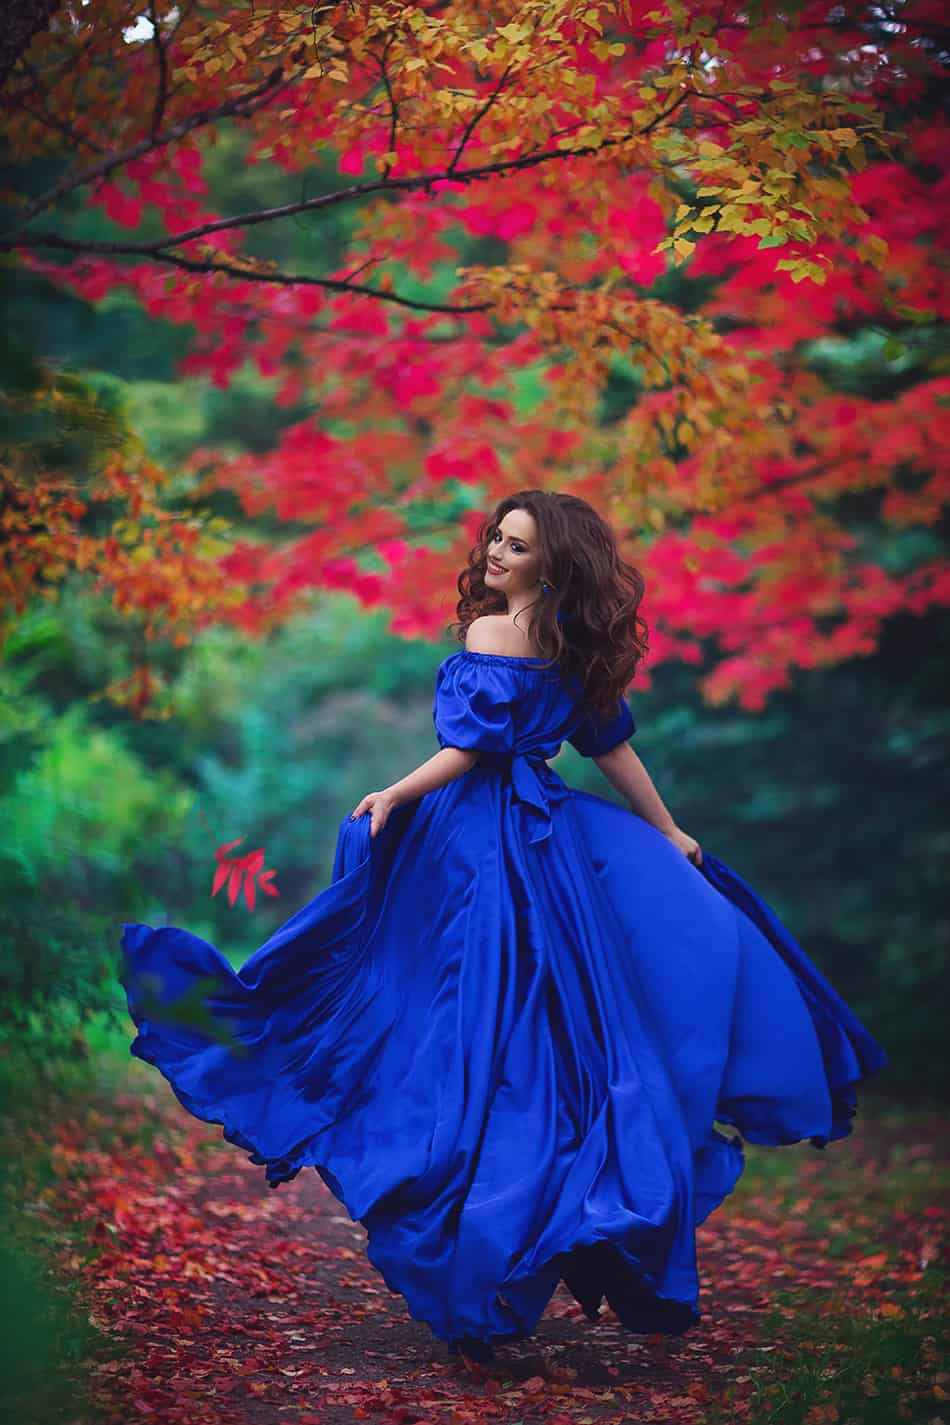 Blue Dress Dream Meaning